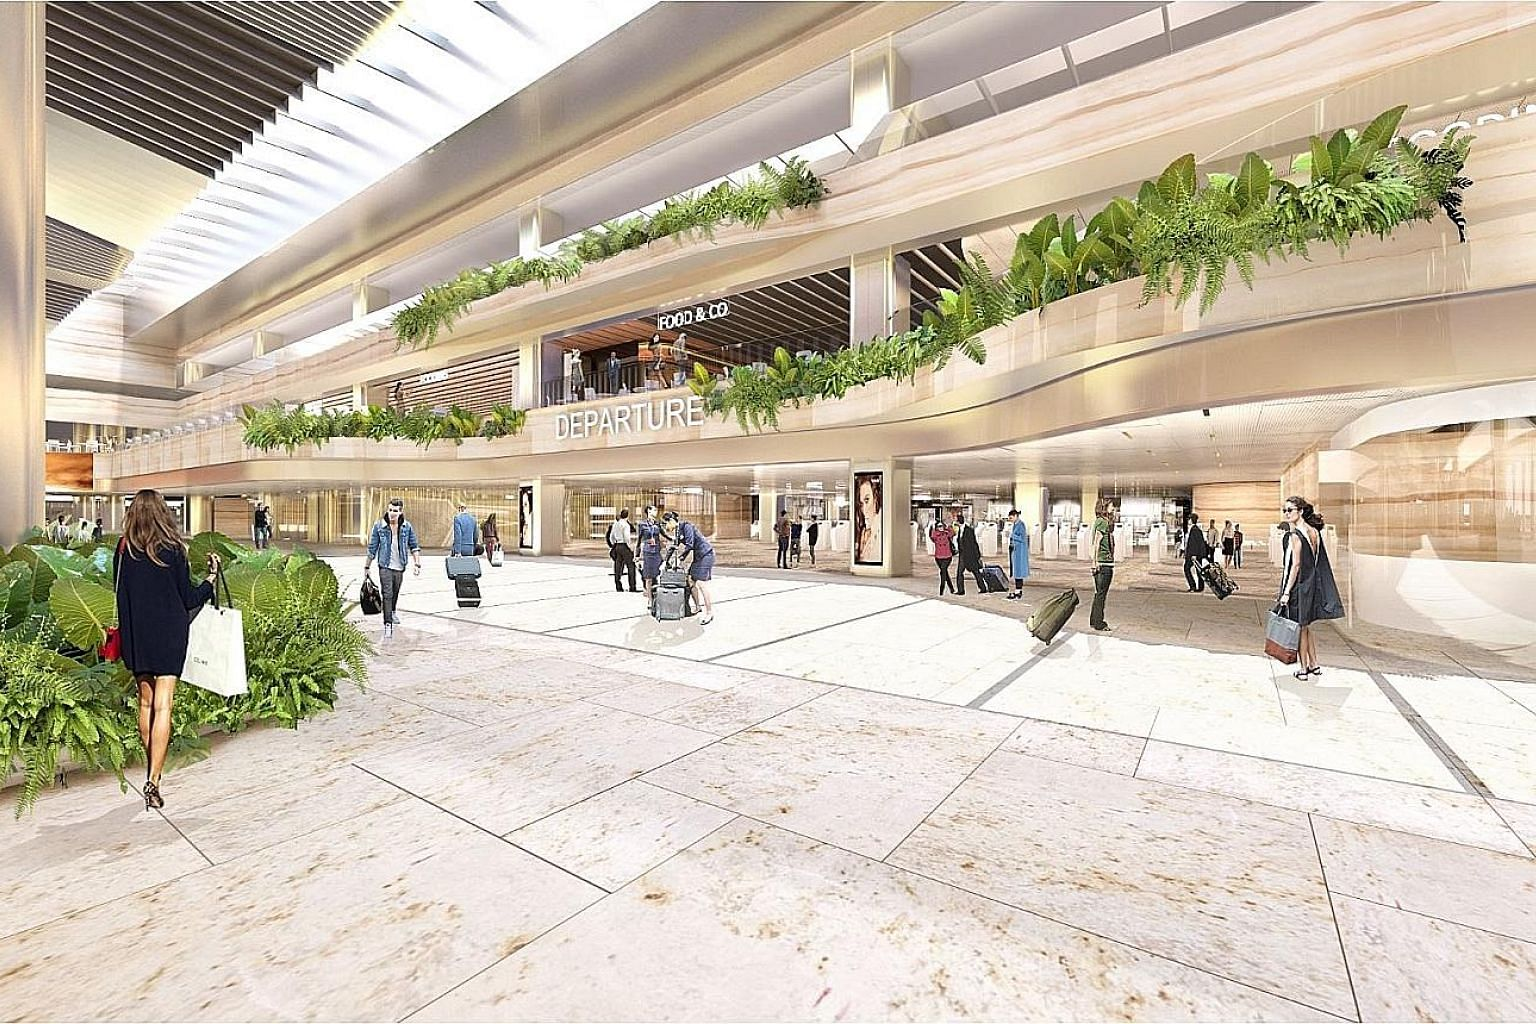 An artist's impression of the upgraded Terminal 2, which will include a departure hall with a new layout of check-in counters, and automated check-in kiosks and bag-drop machines.